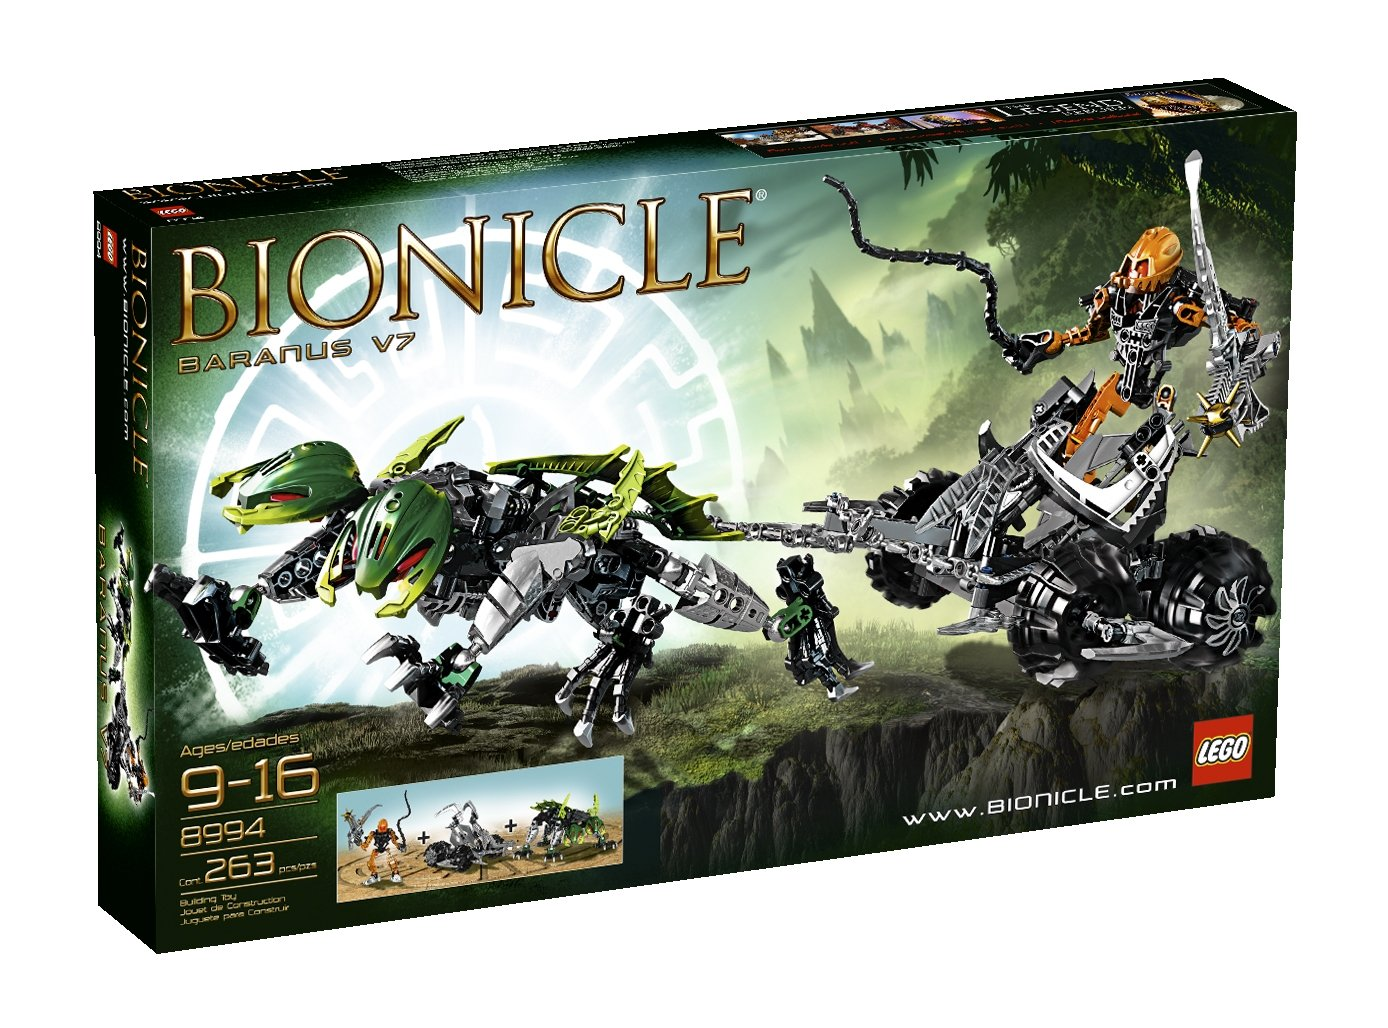 Top 15 Best Lego BIONICLE Sets Reviews in 2019 10